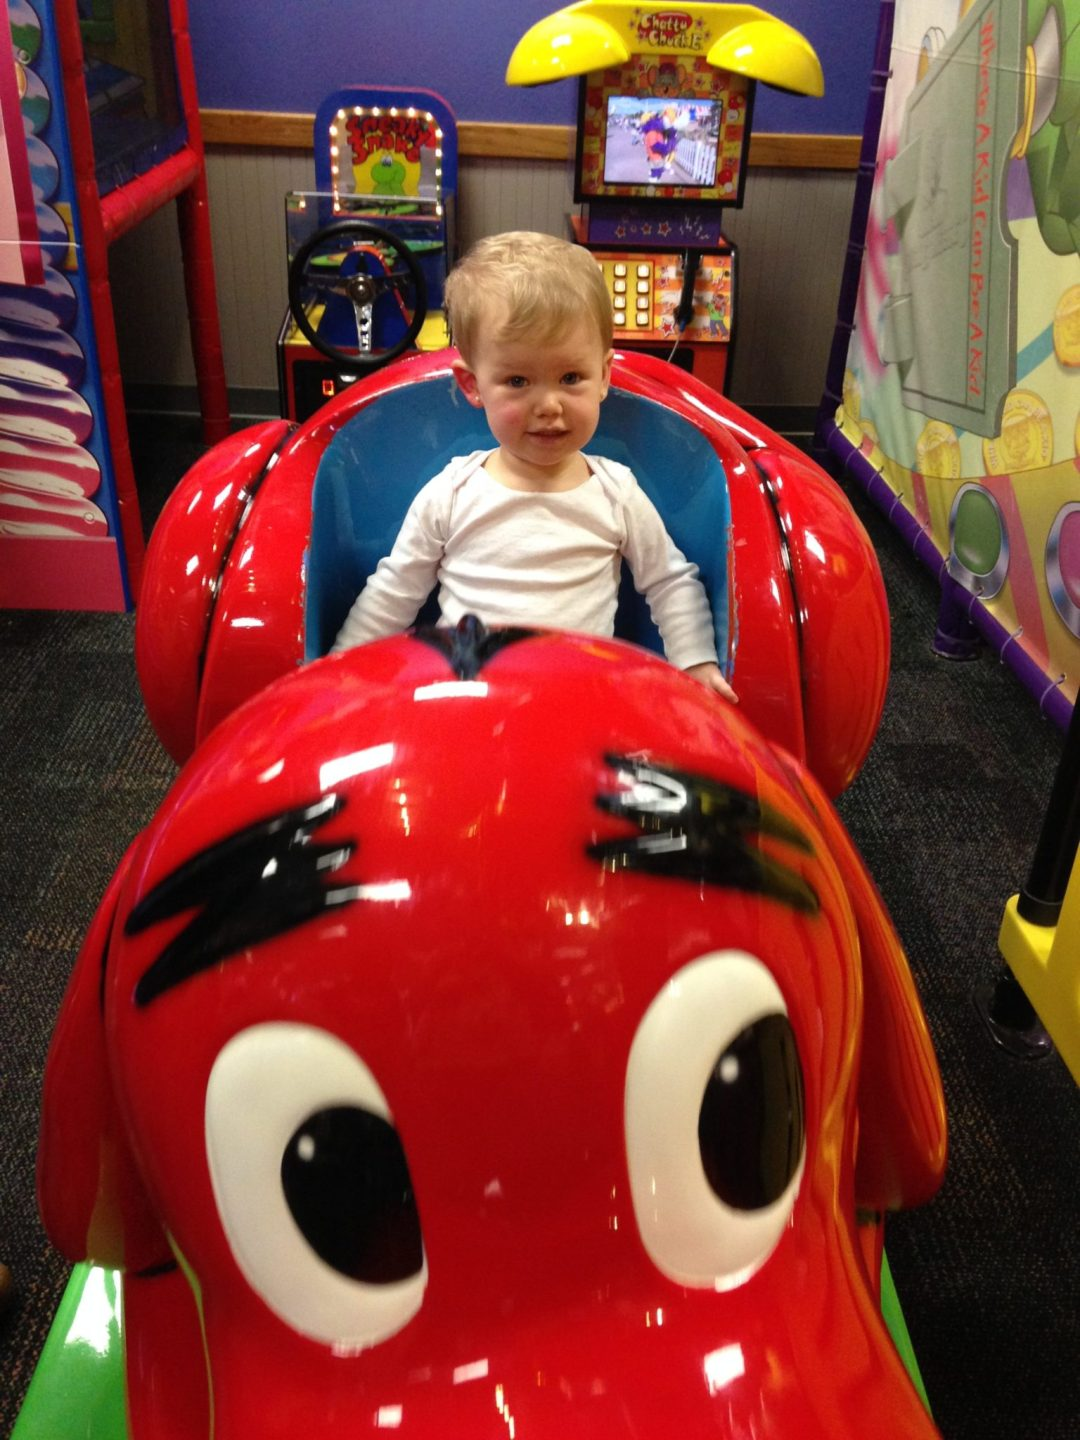 "Clifford Ride. Image by Shannon McGee <a href=""https://flic.kr/p/pF27aP"" target=""_blank"">Shannon McGee/flickr</a>"